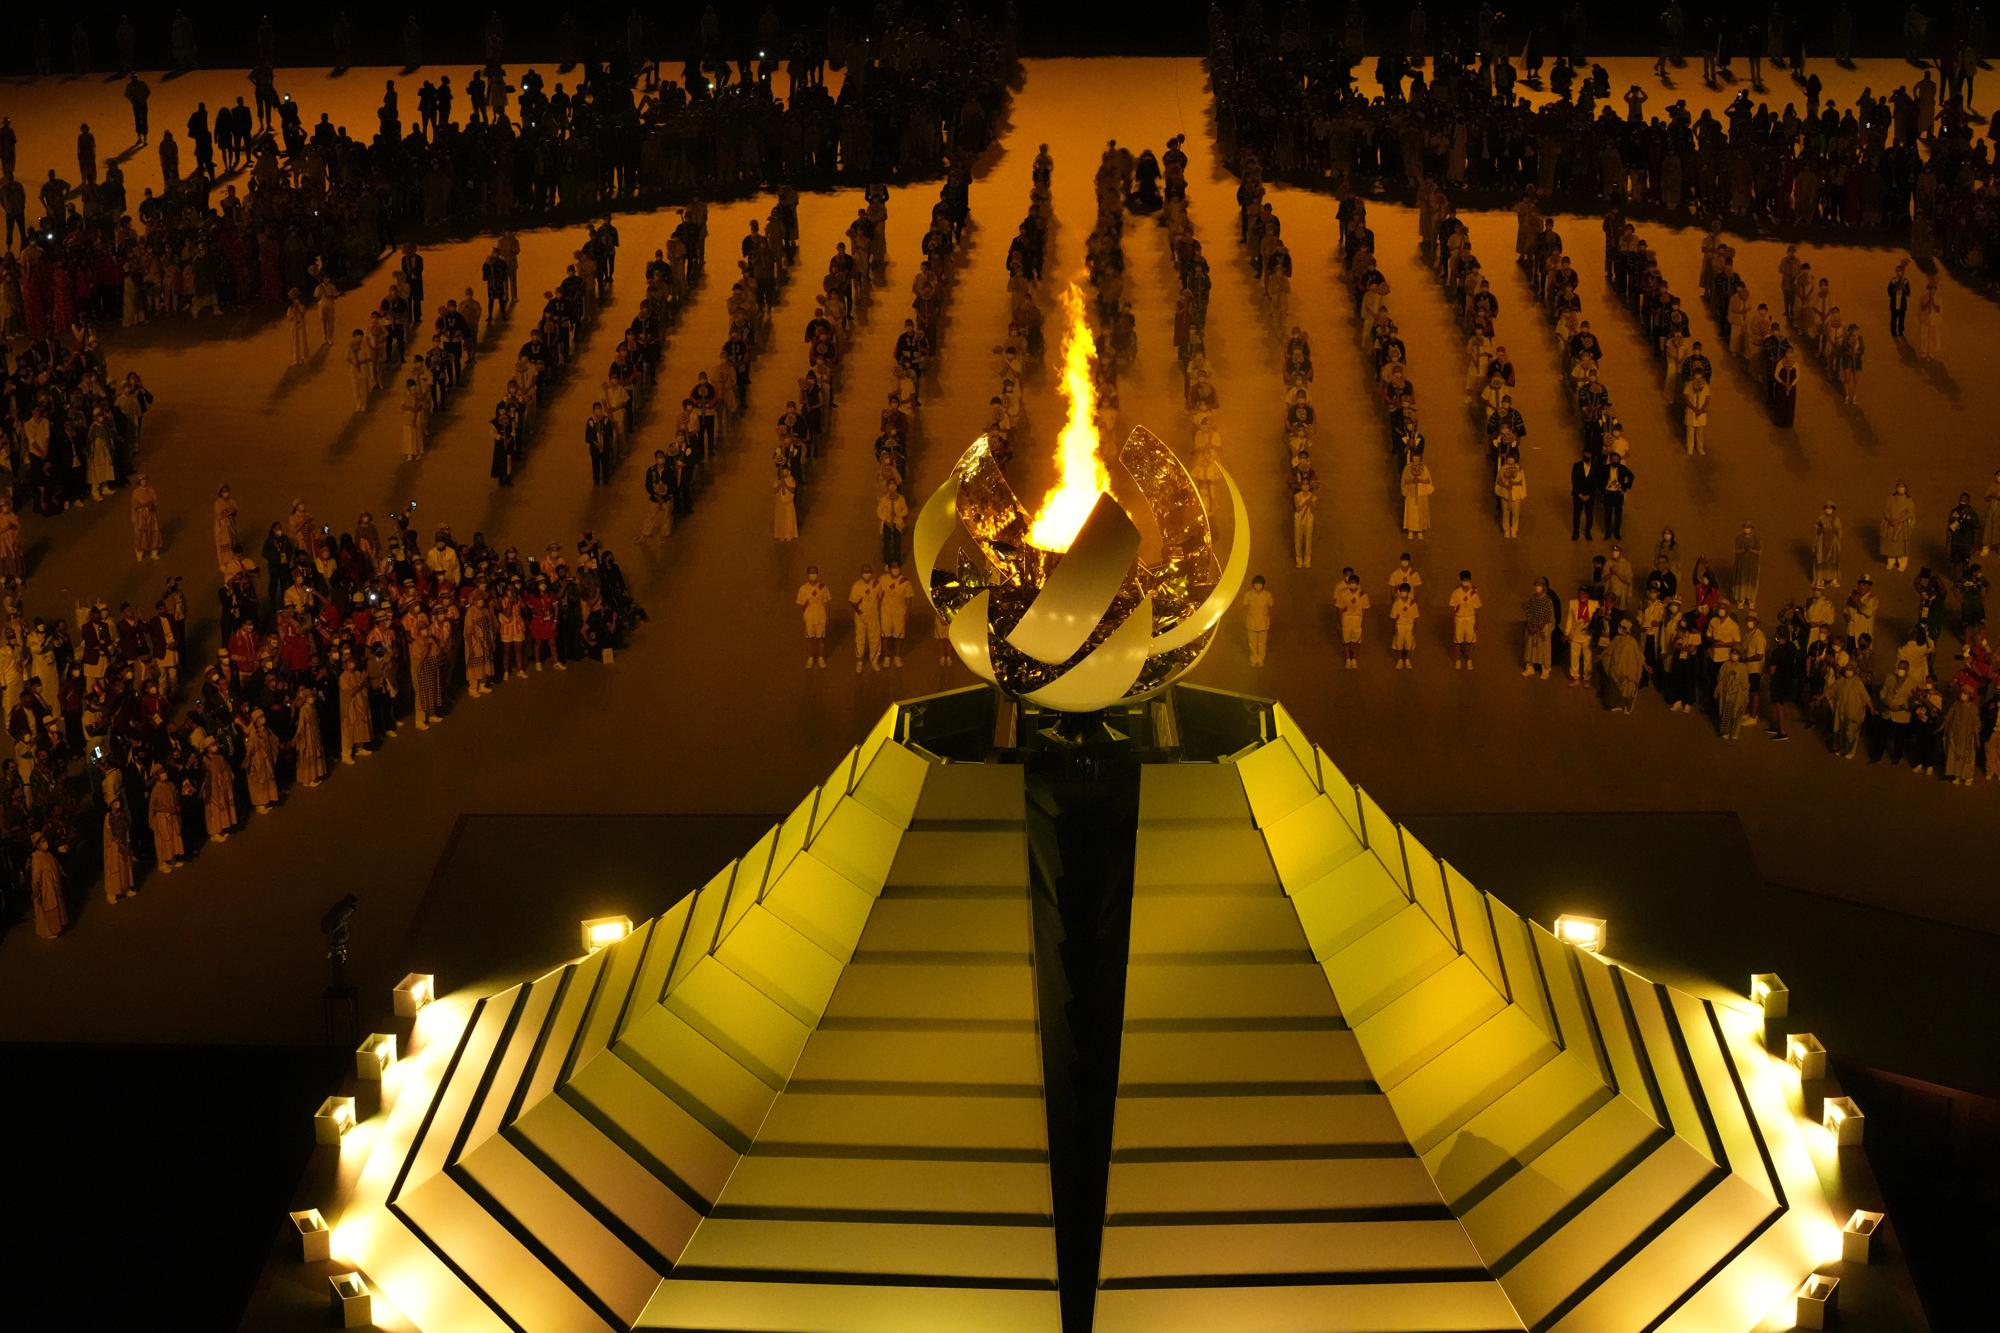 The Olympic flame burns during the opening ceremony in the Olympic Stadium at the 2020 Summer Olympics, Friday, July 23, 2021, in Tokyo, Japan. (AP Photo/Lee Jin-man)